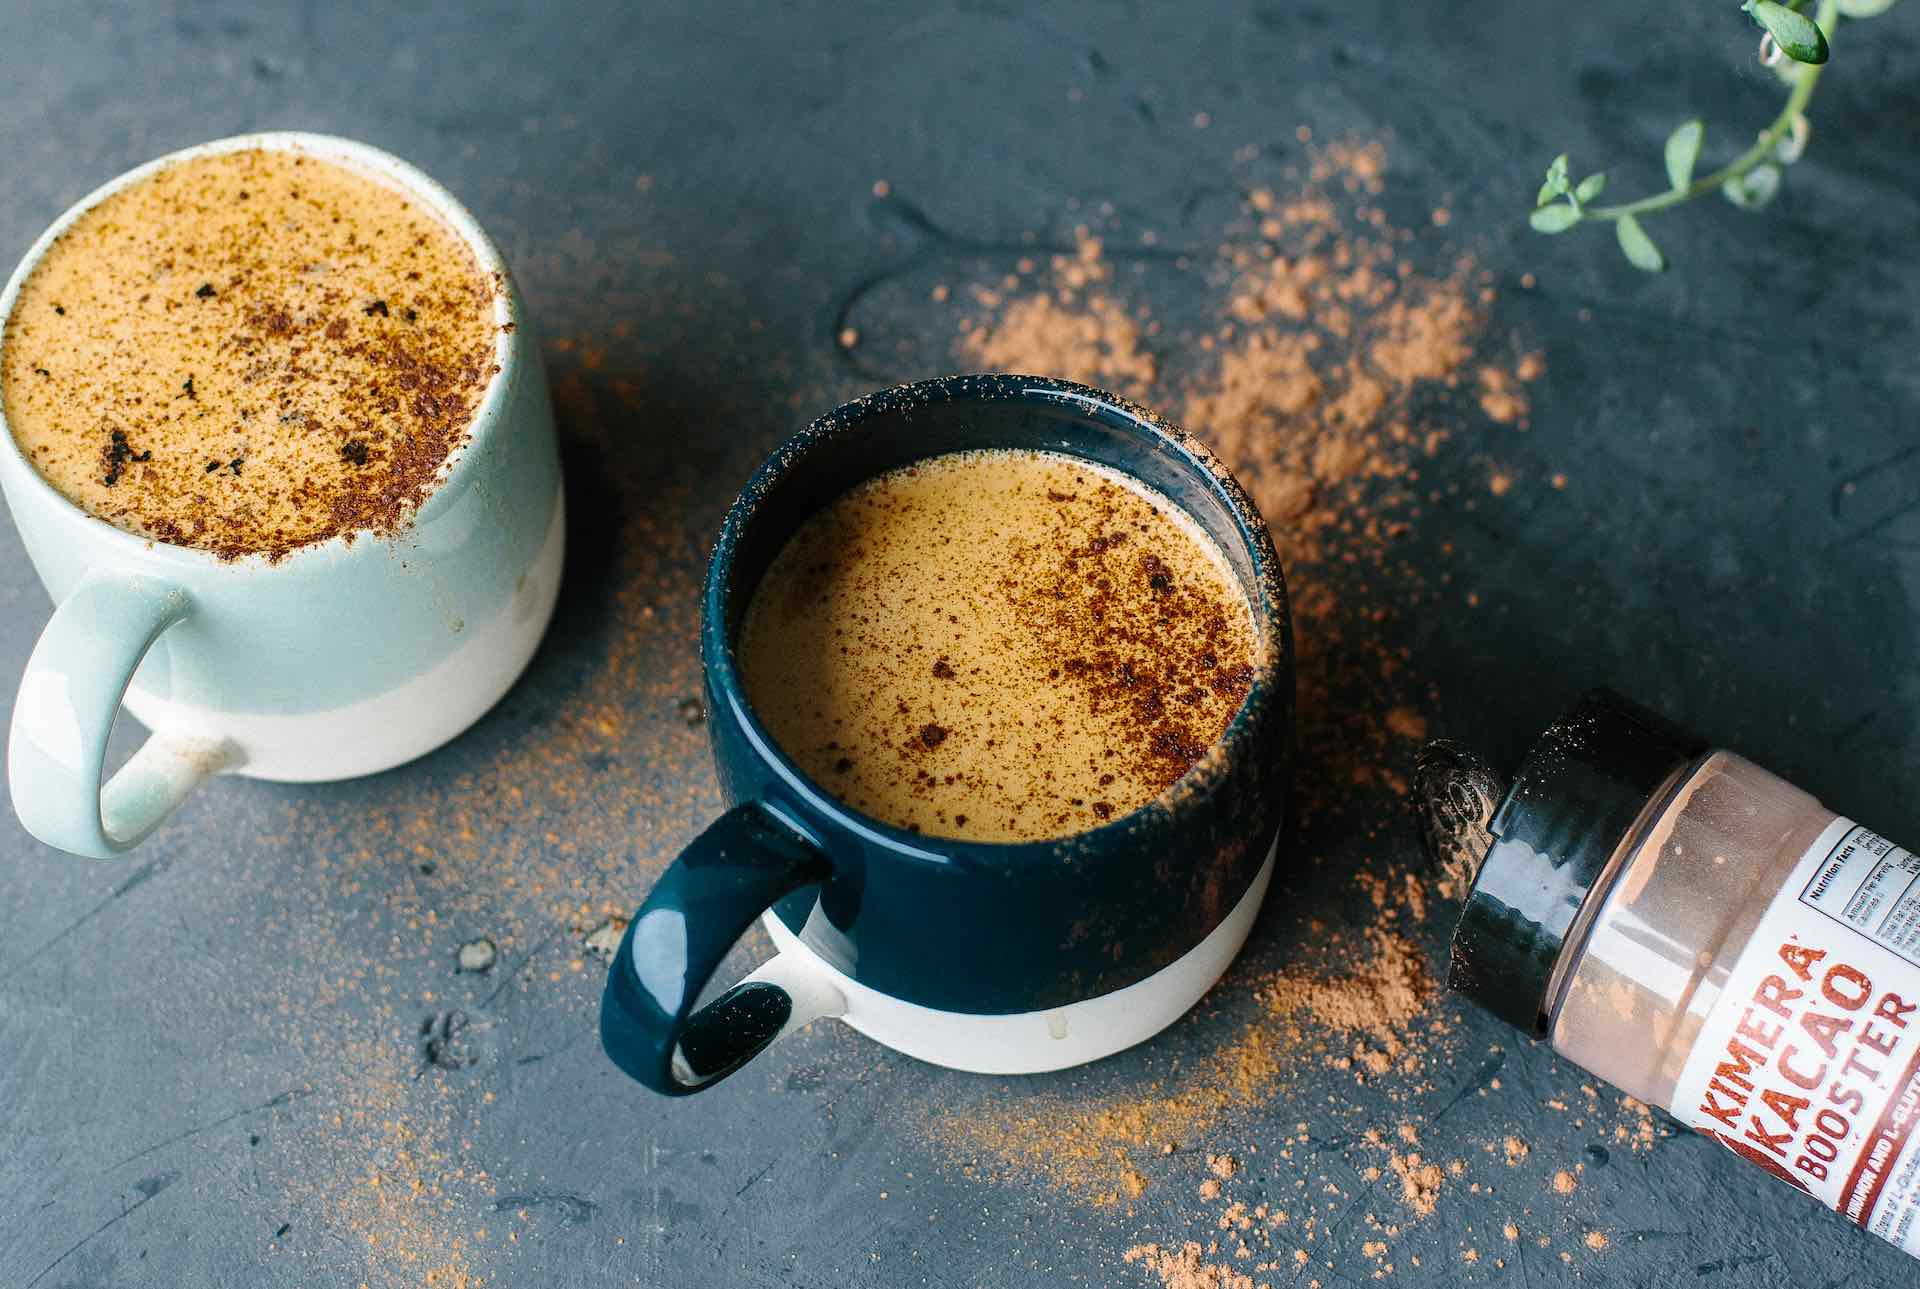 Keto Coffee: Why It's The Energy-Booster You're Missing, And How To Make It